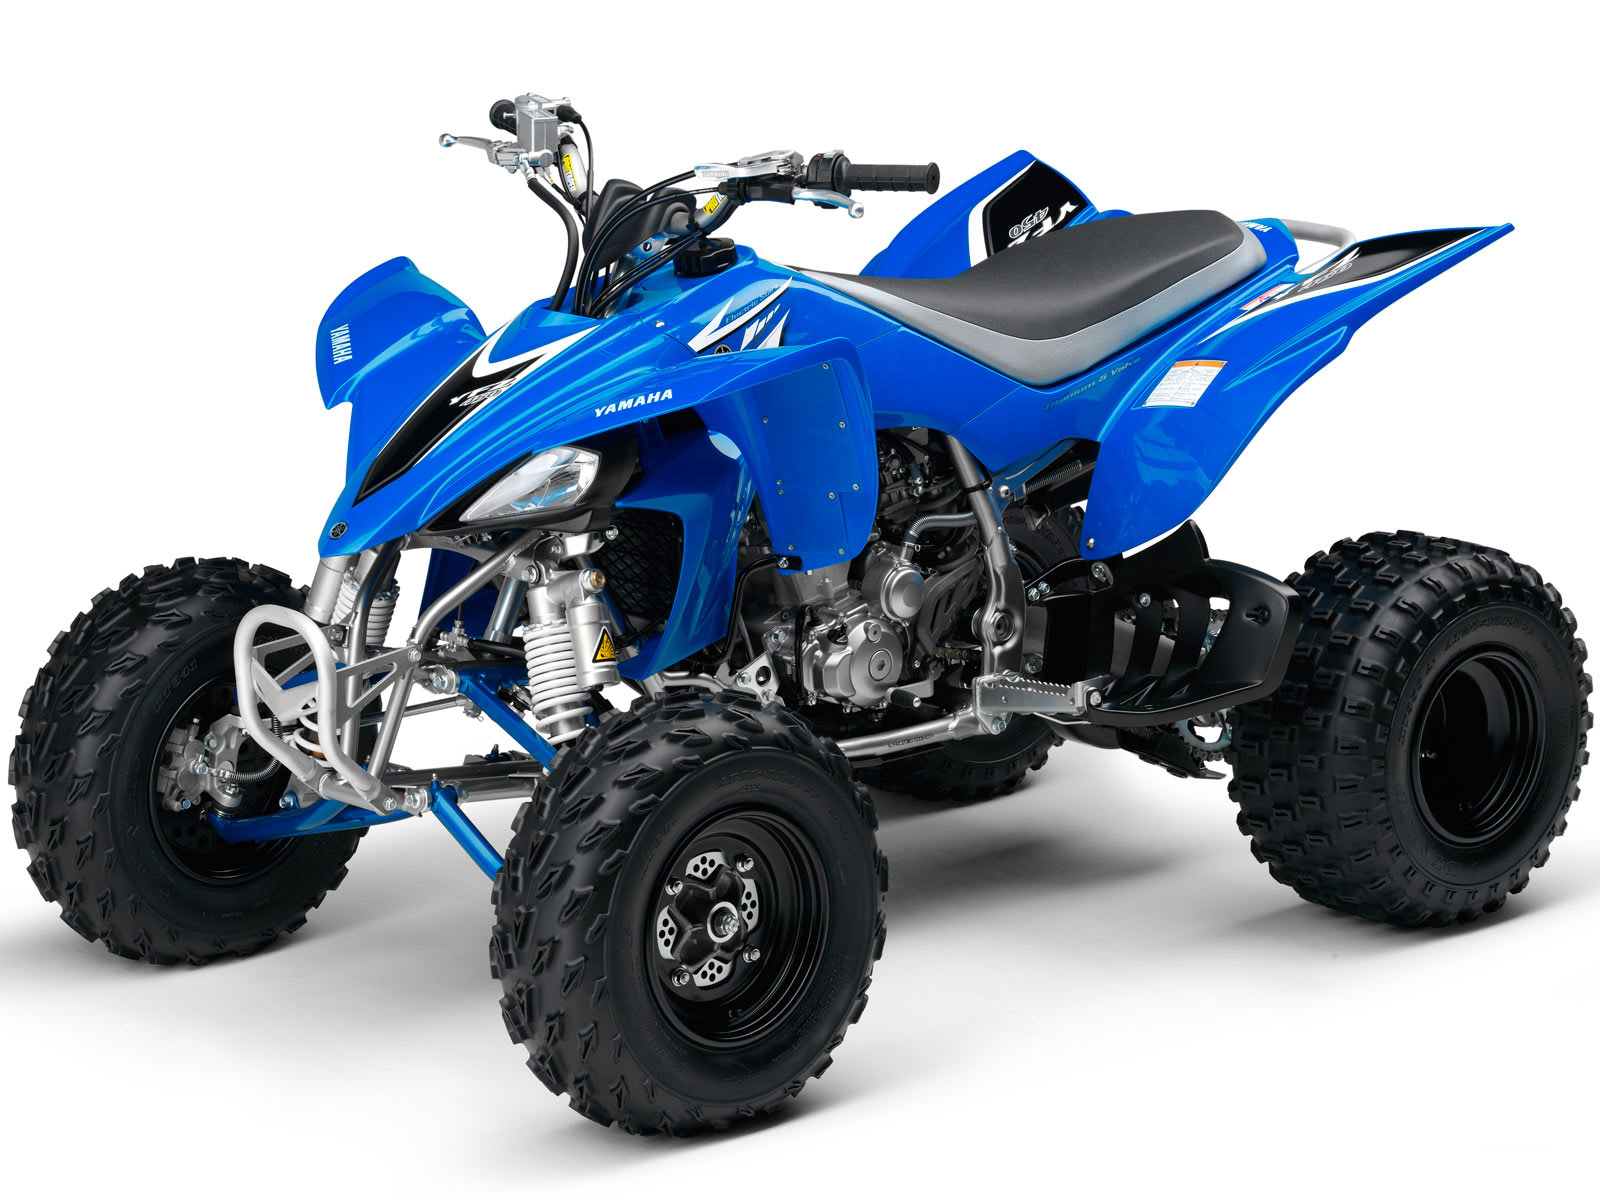 2008 yamaha yfz 450 atv pictures specs accident lawyers info. Black Bedroom Furniture Sets. Home Design Ideas